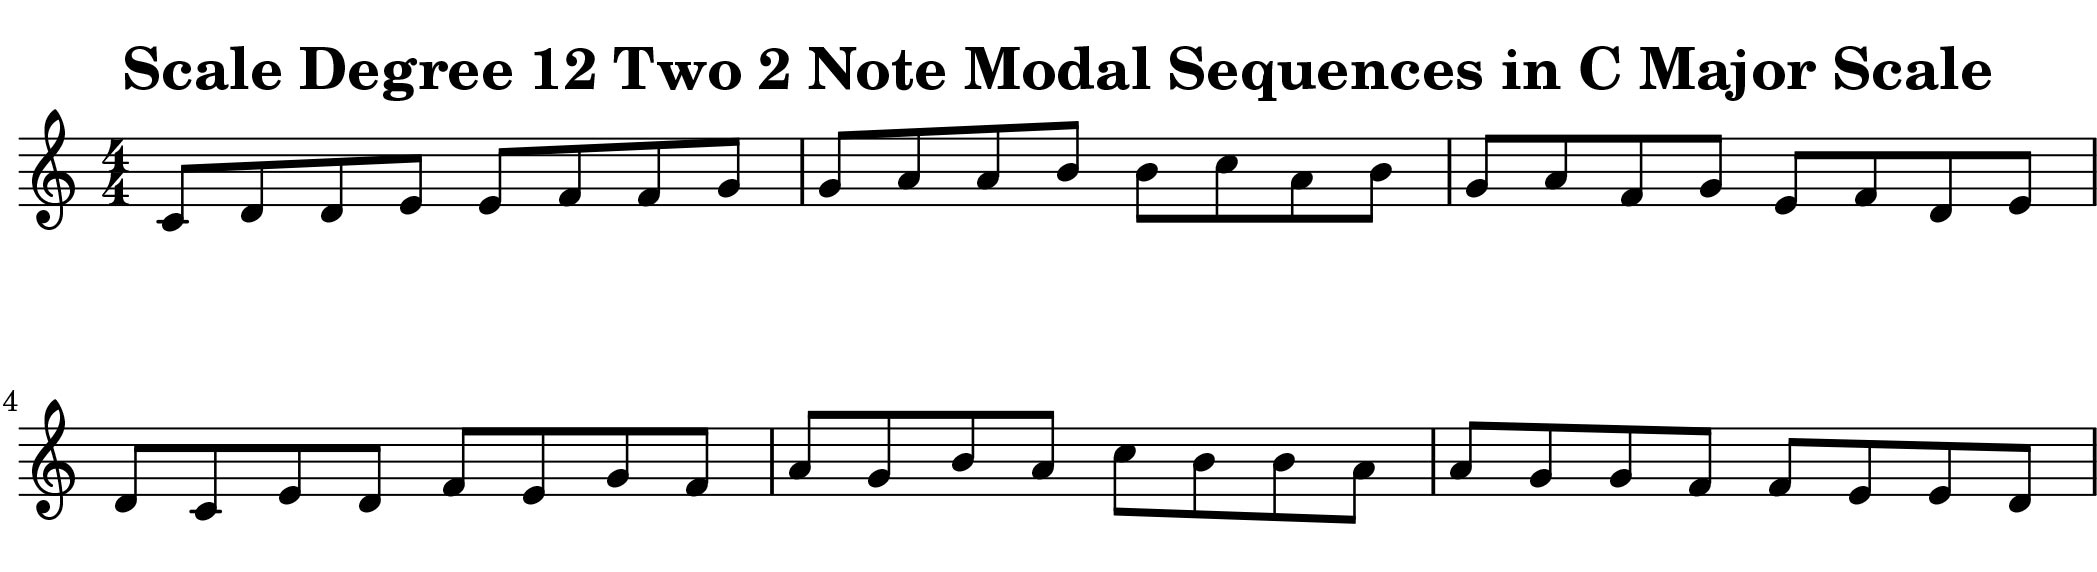 C Major 2 Note Modal Sequences by Bruce Arnold for Muse Eek Publishing